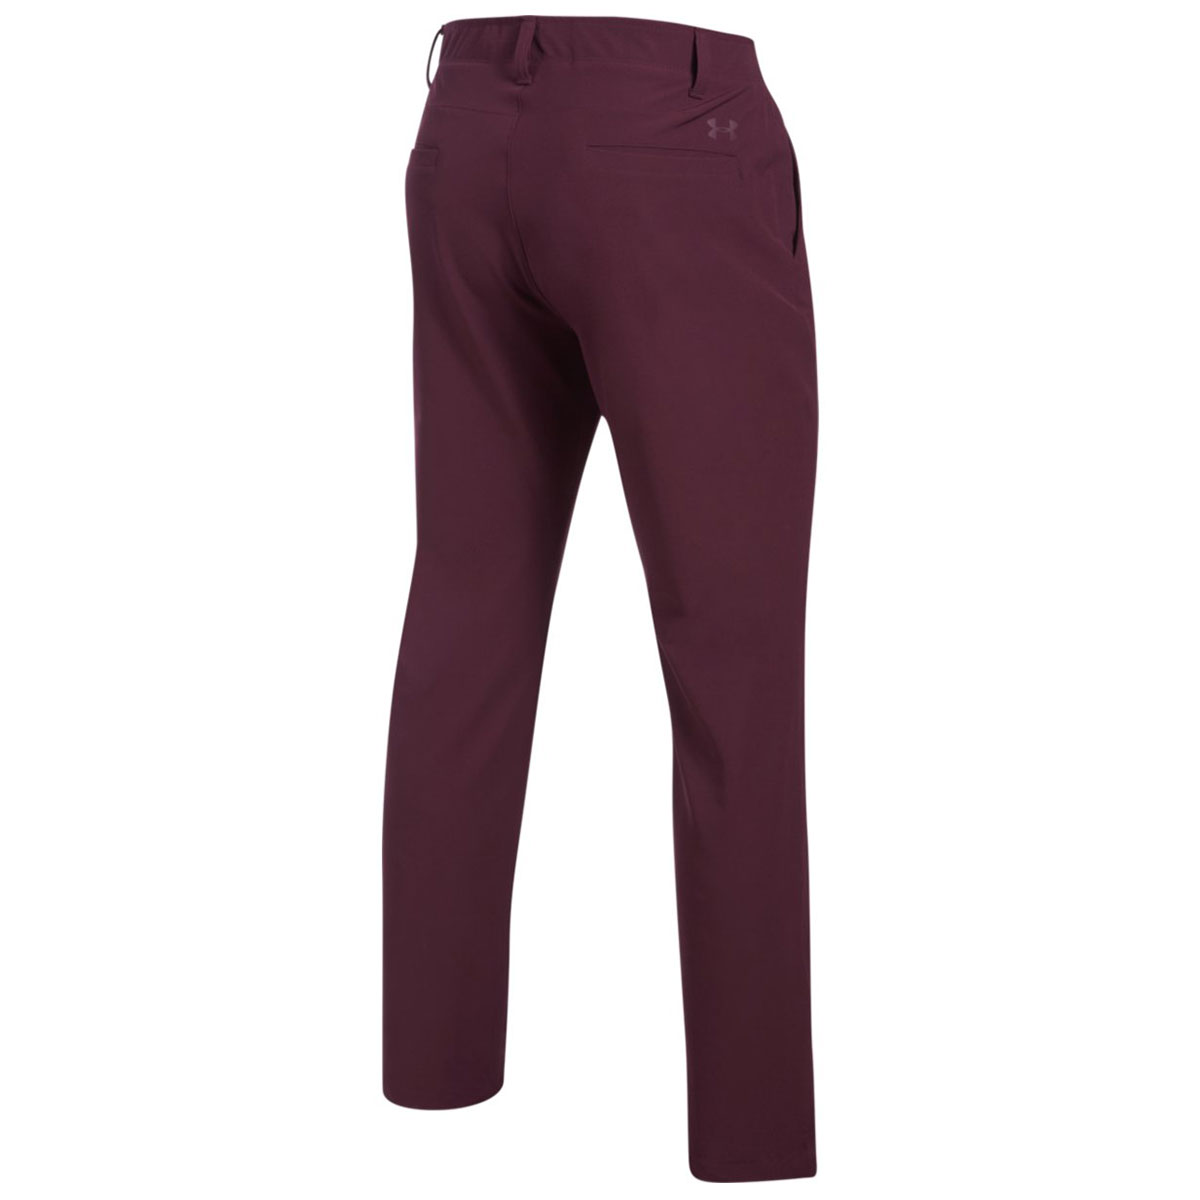 Under-Armour-Mens-Match-Play-ColdGear-Infrared-Taper-Golf-Trousers-52-OFF-RRP thumbnail 17